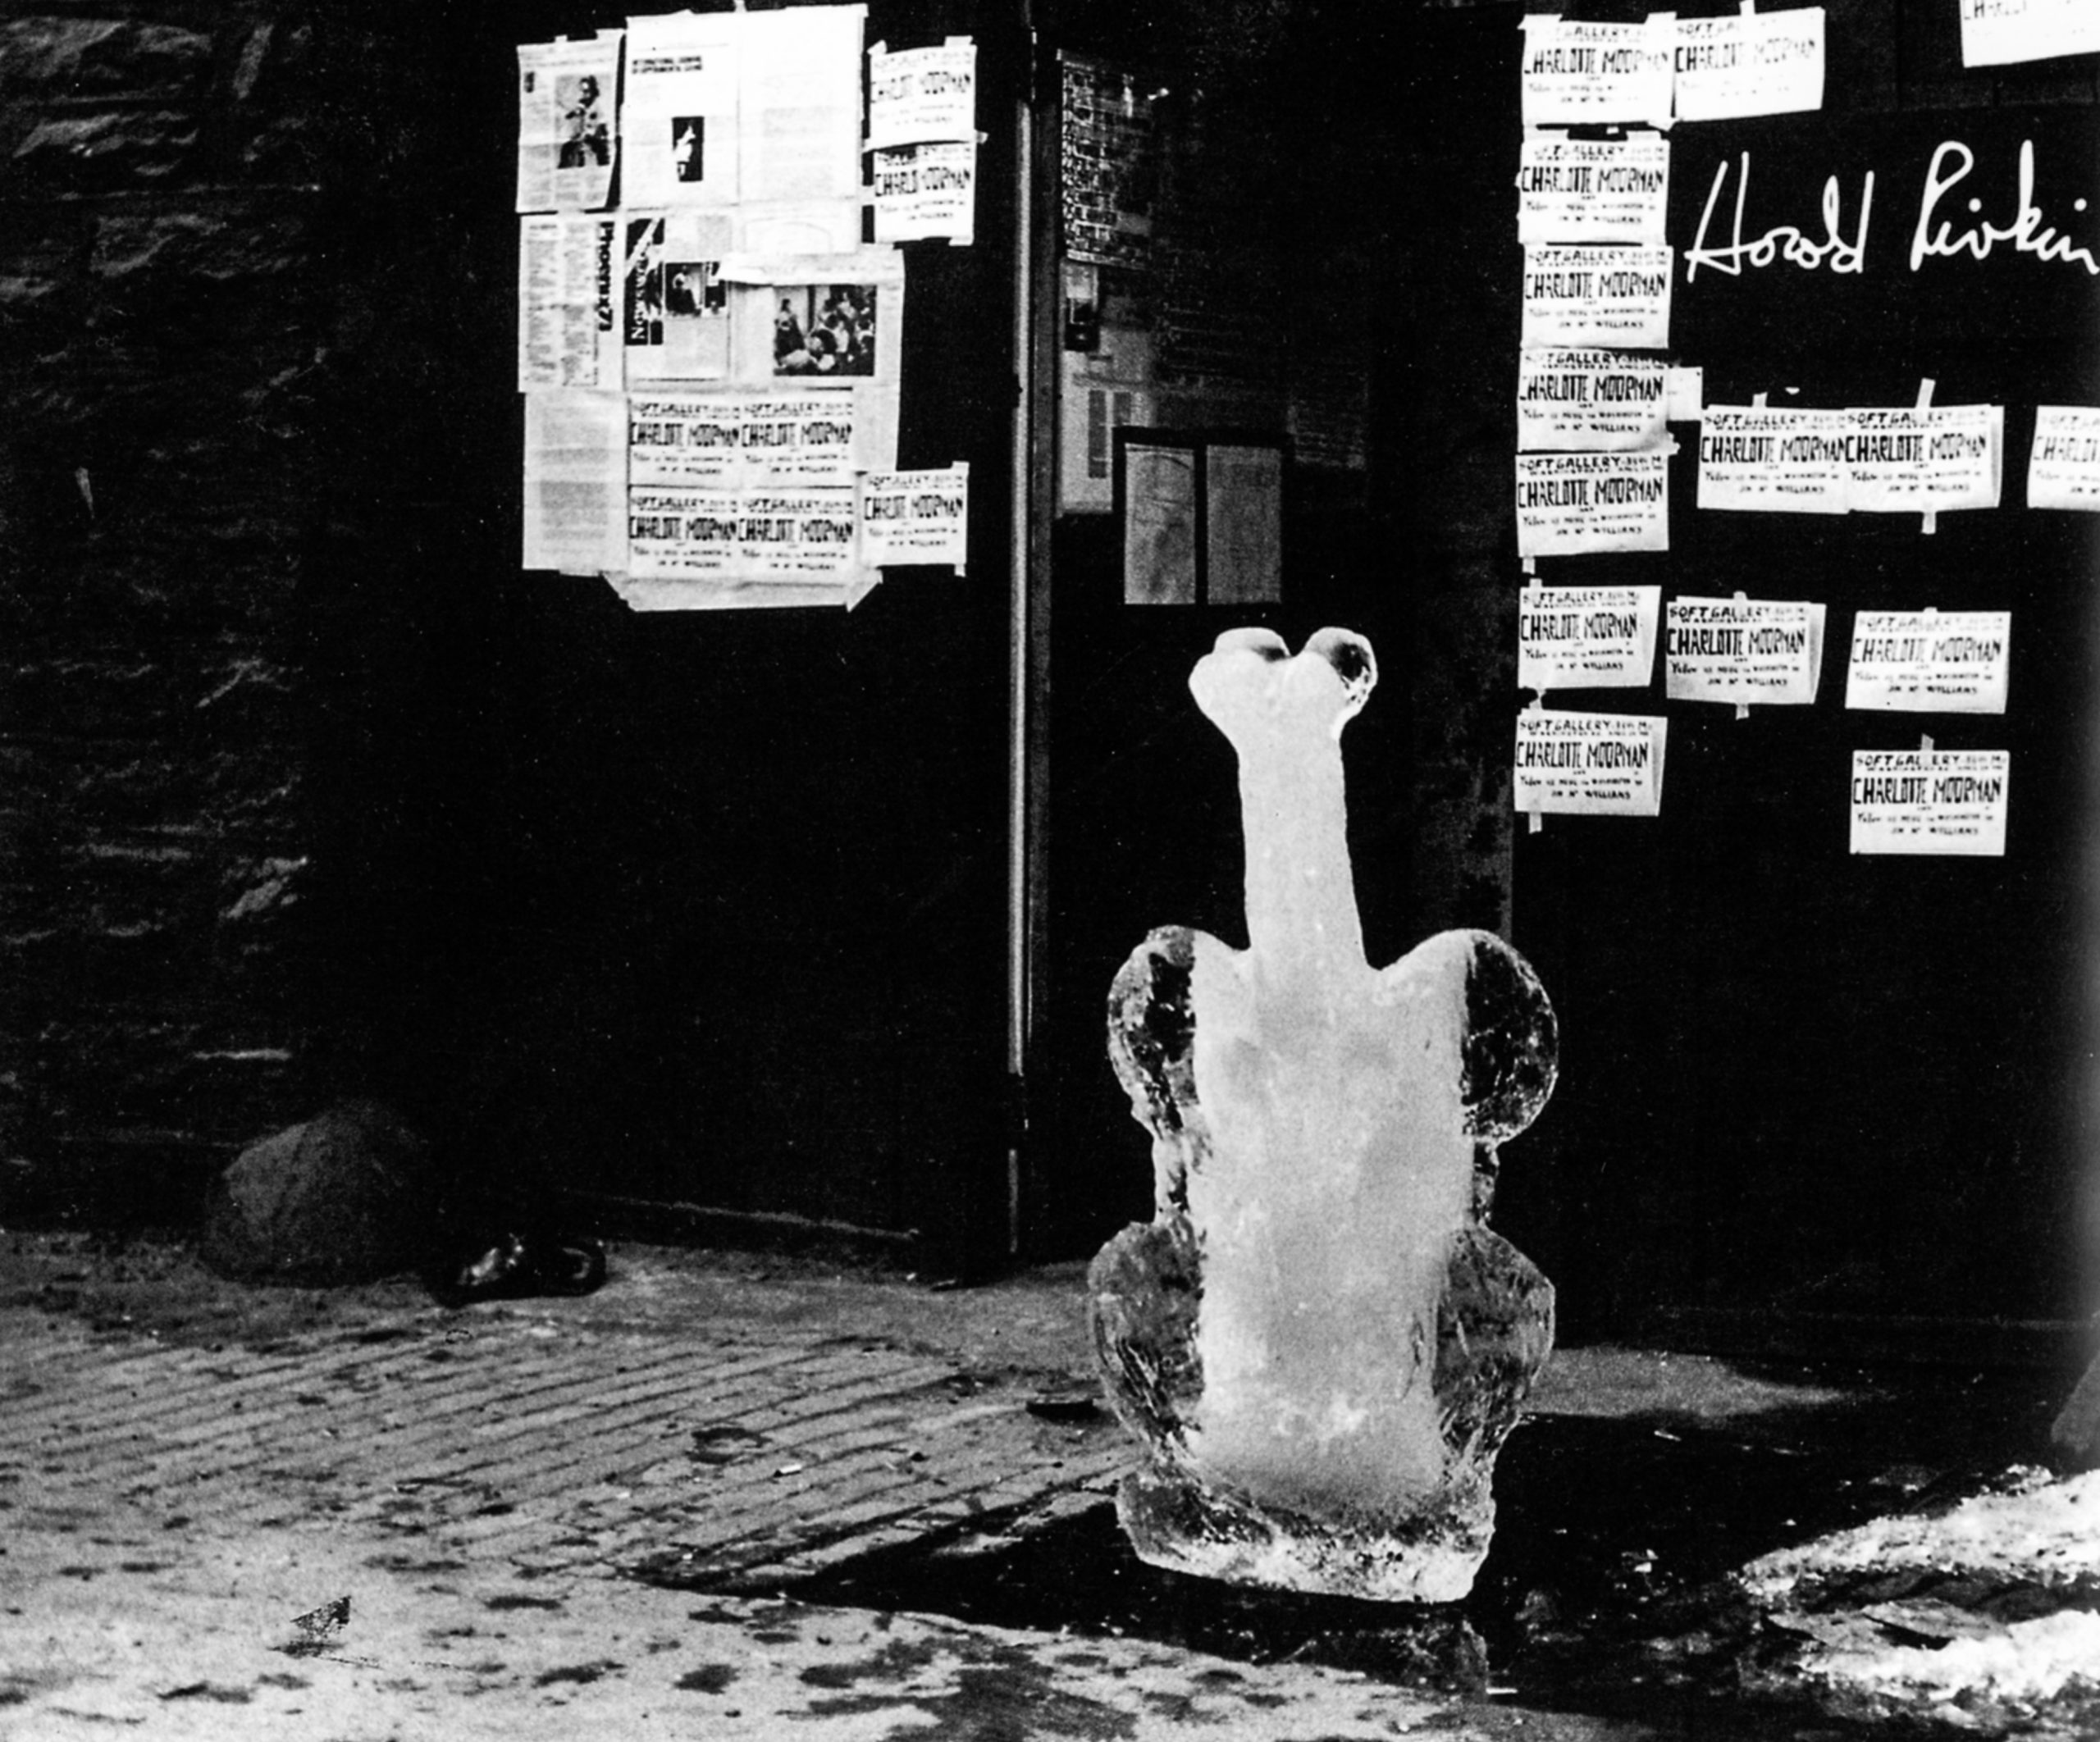 A sculpted ice cello outside the Harold Rivkin Gallery in Washington, D.C., before Moorman's performance of McWilliams's Yellow Ice Music for Washington in 1973. Photographer unknown. Photo courtesy Charlotte Moorman Archive, Charles Deering McCormick Library of Special Collections, Northwestern University Library.